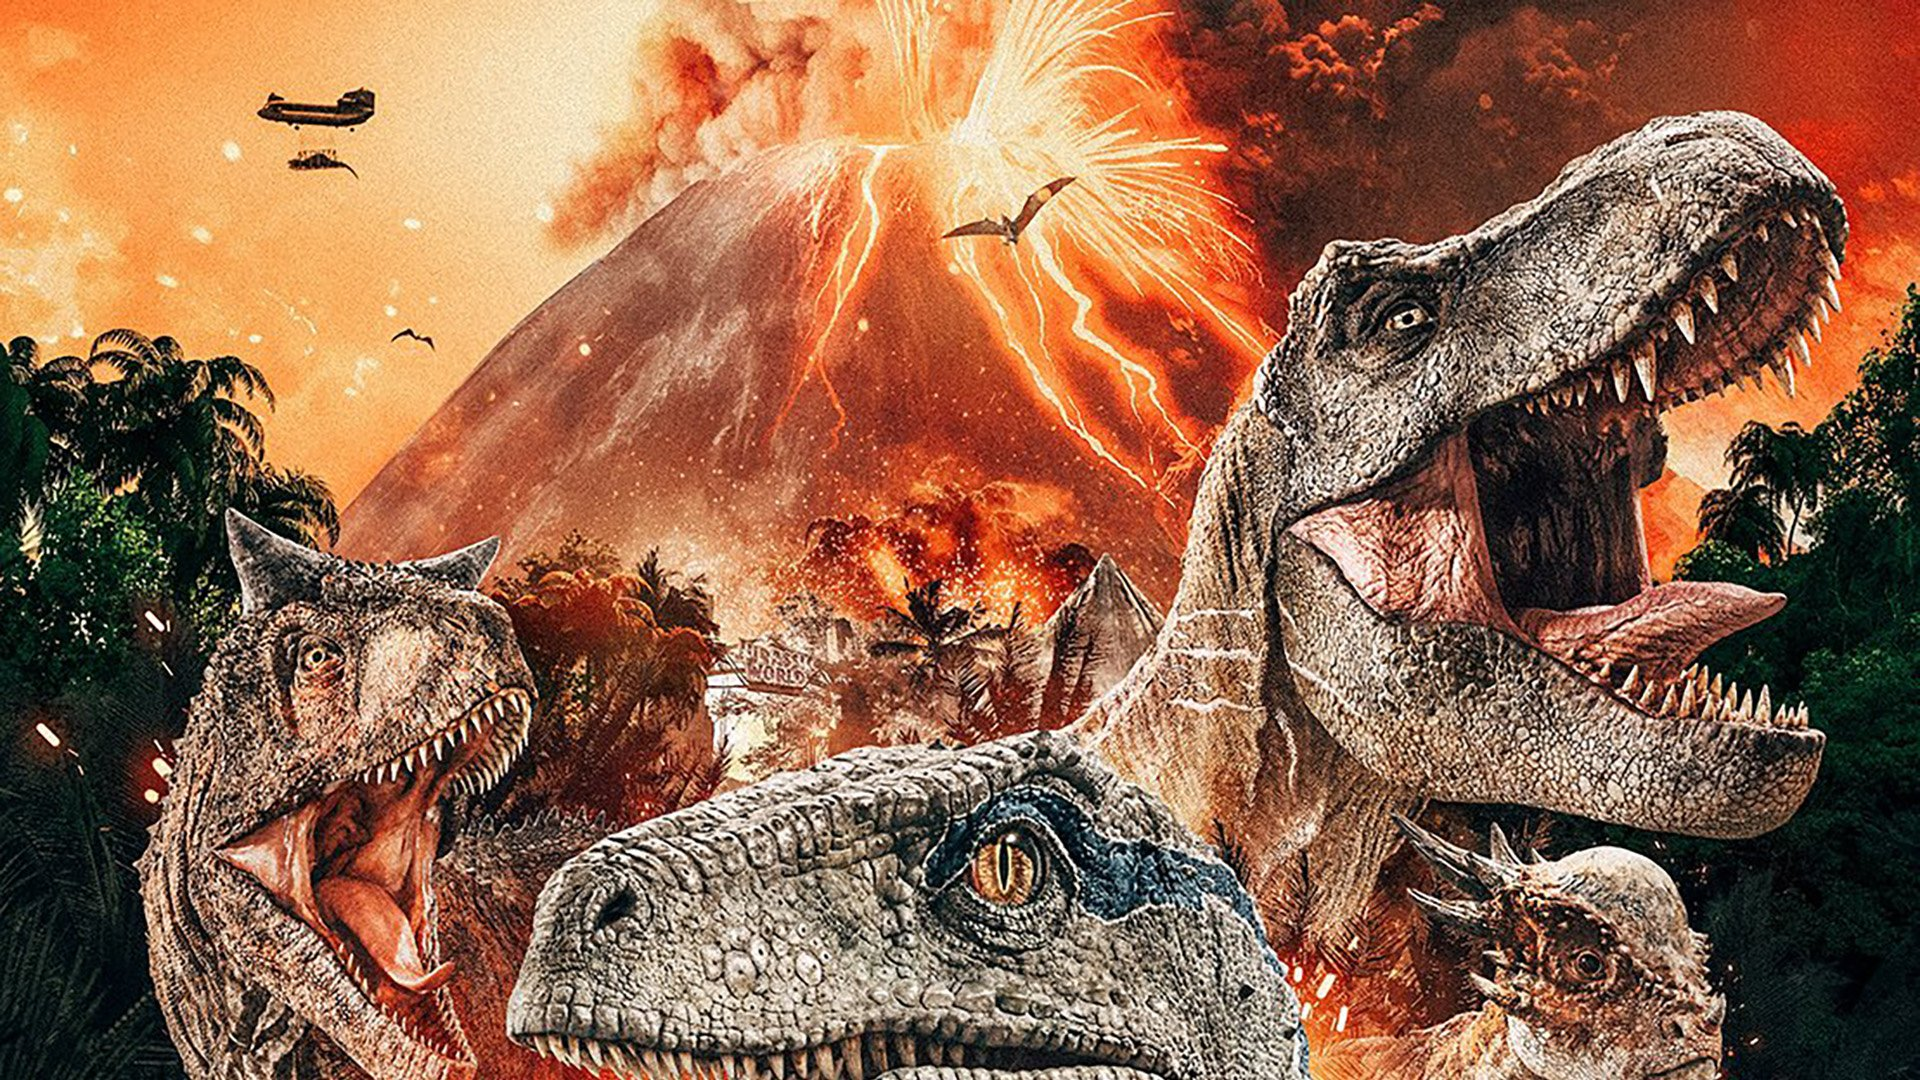 Jurassic World Fallen Kingdom Poster Has Dinosaurs Is A Clusterf K